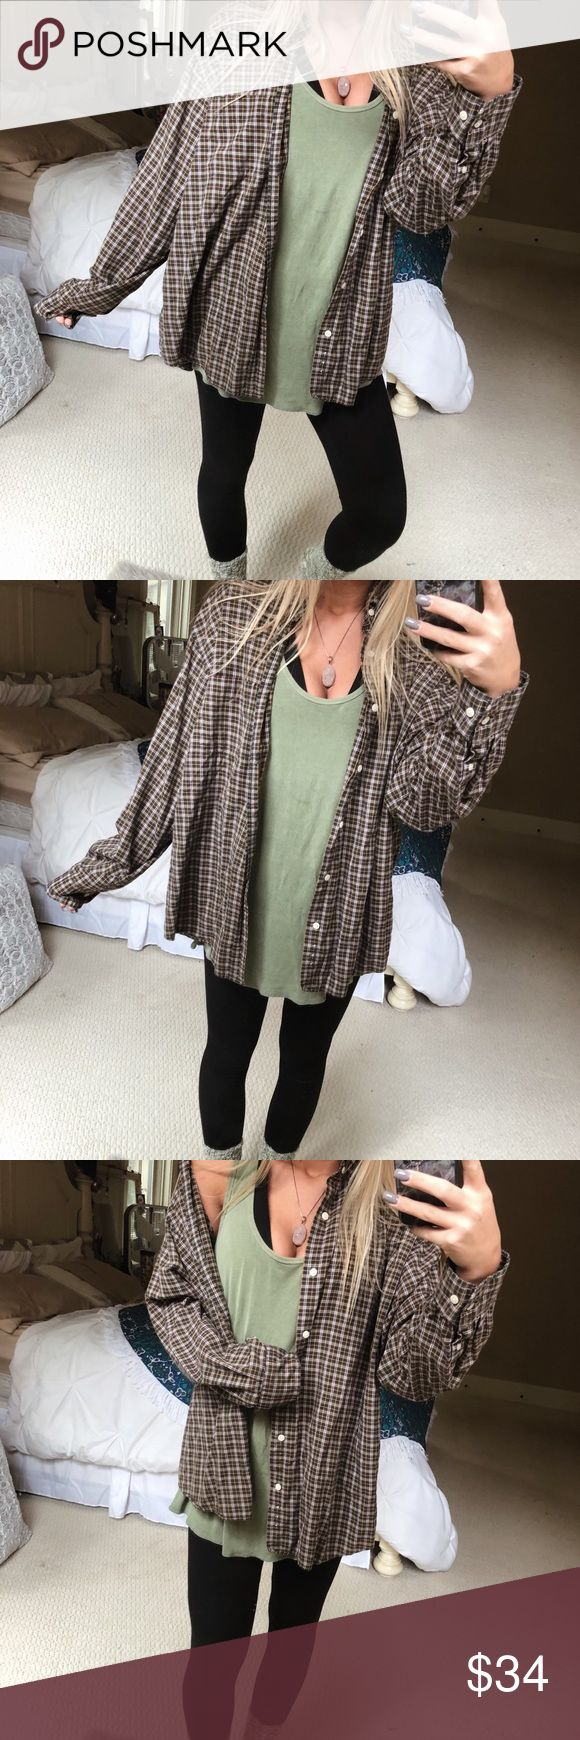 aliyah cozy boyfriend flannel super comfy! pair it with your favorite tee + leggings 🌝 fits a med-large 🌄 — * all offers 100% welcomed + encouraged * bundle for a private discount of at least 20% off  * orders guaranteed to ship within 1-2 days unless stated otherwise * ask me any questions if you ever have any! xo Tops Button Down Shirts